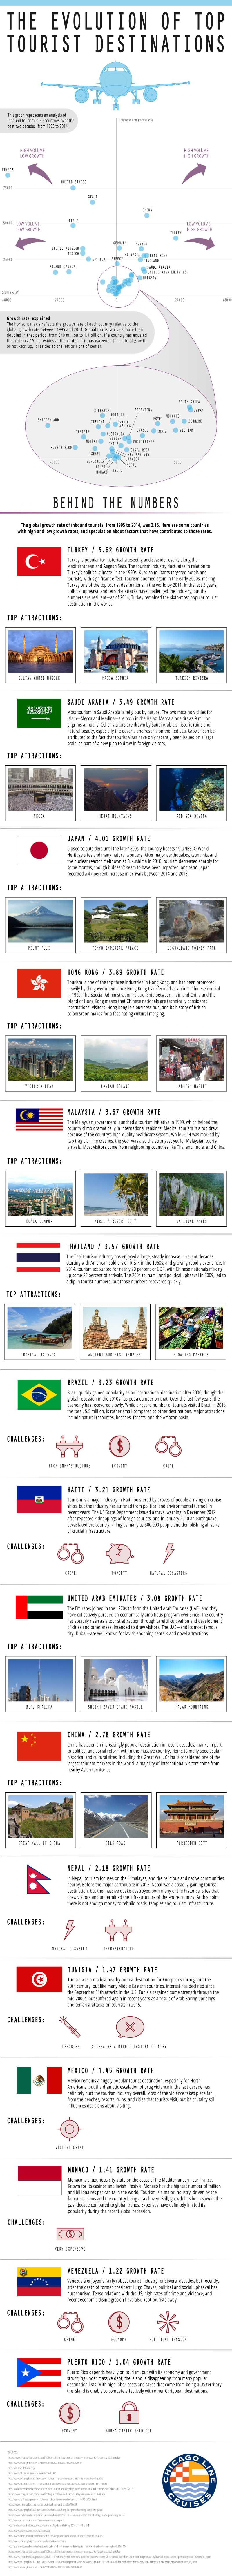 The Growth of Tourist Hot Spots Around The World